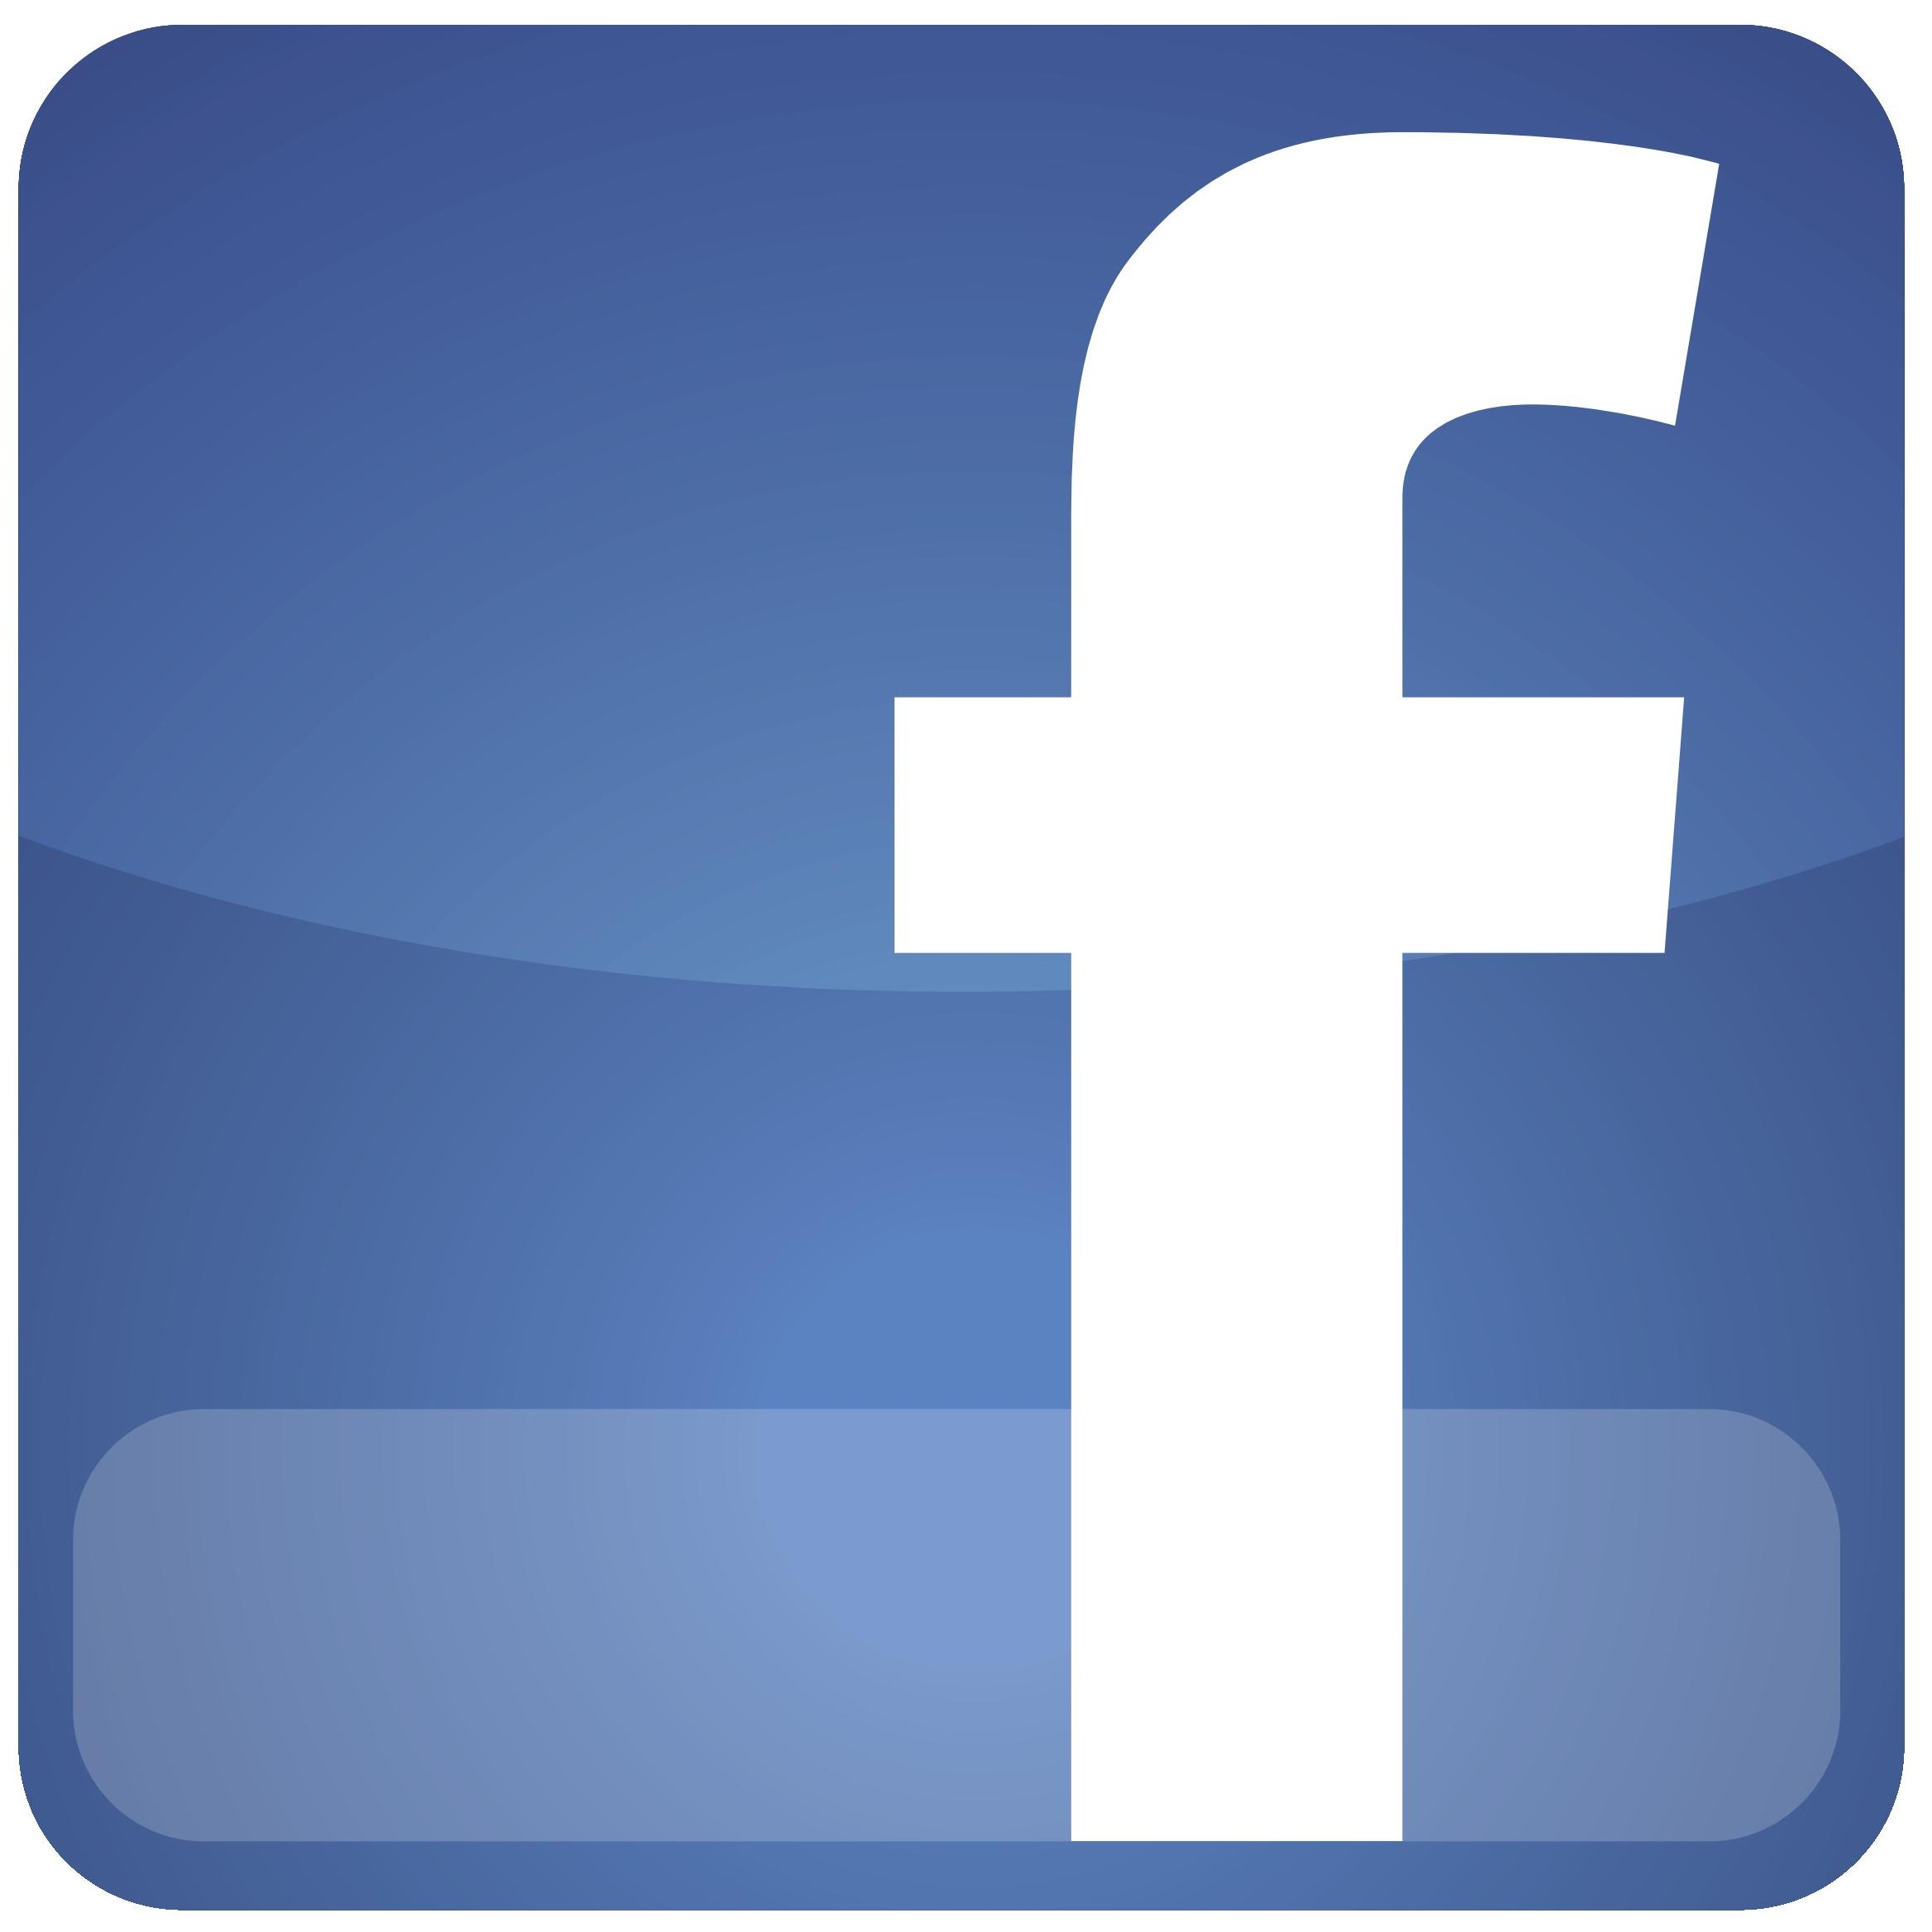 Facebook logo for website clipart clipart download Facebook logo for website clipart - ClipartFest clipart download